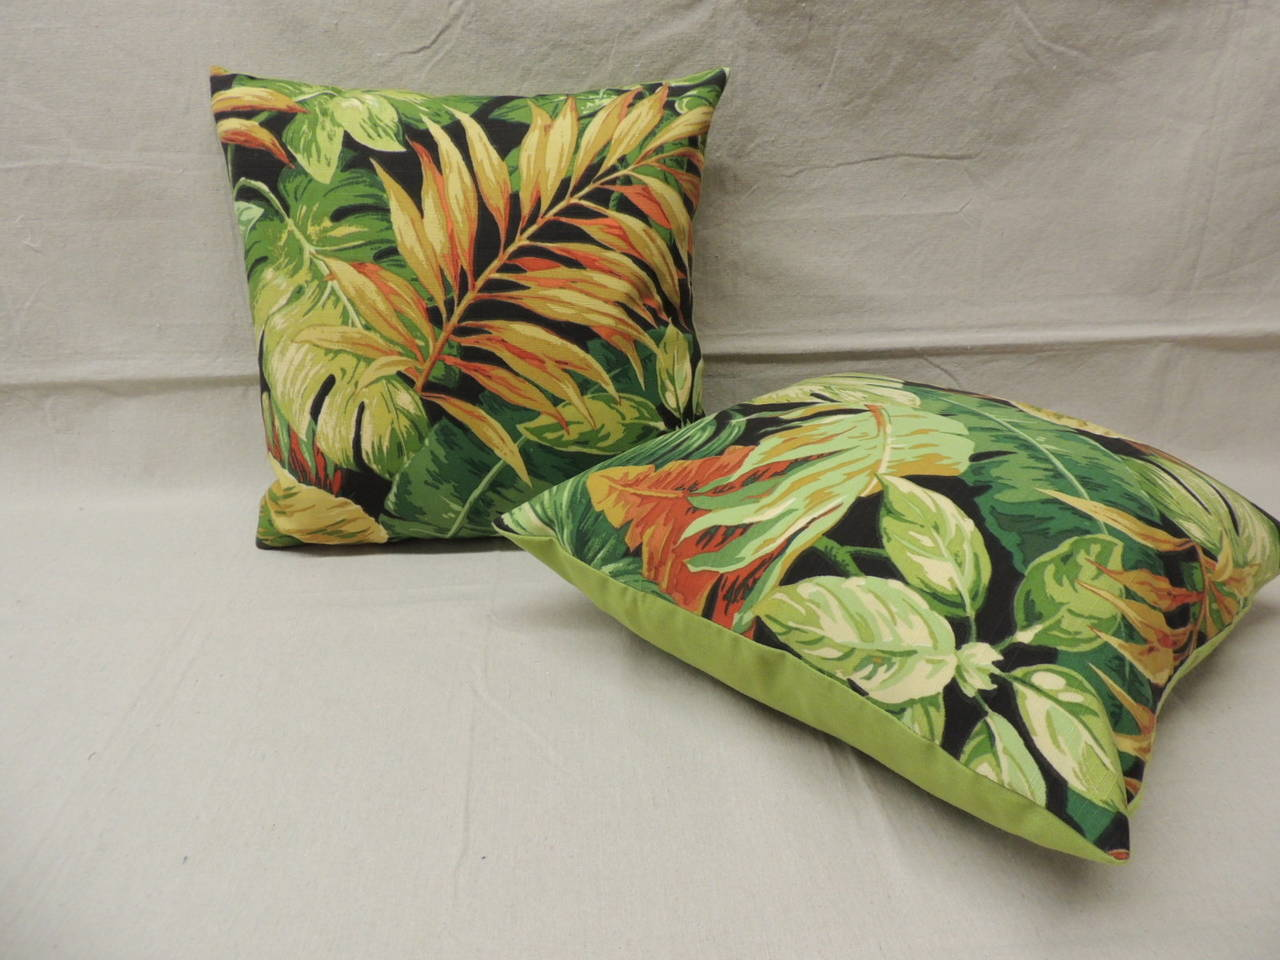 Decorative Pillows Tropical : Pair of Green Tropical Leaf Barkcloth Decorative Pillows For Sale at 1stdibs